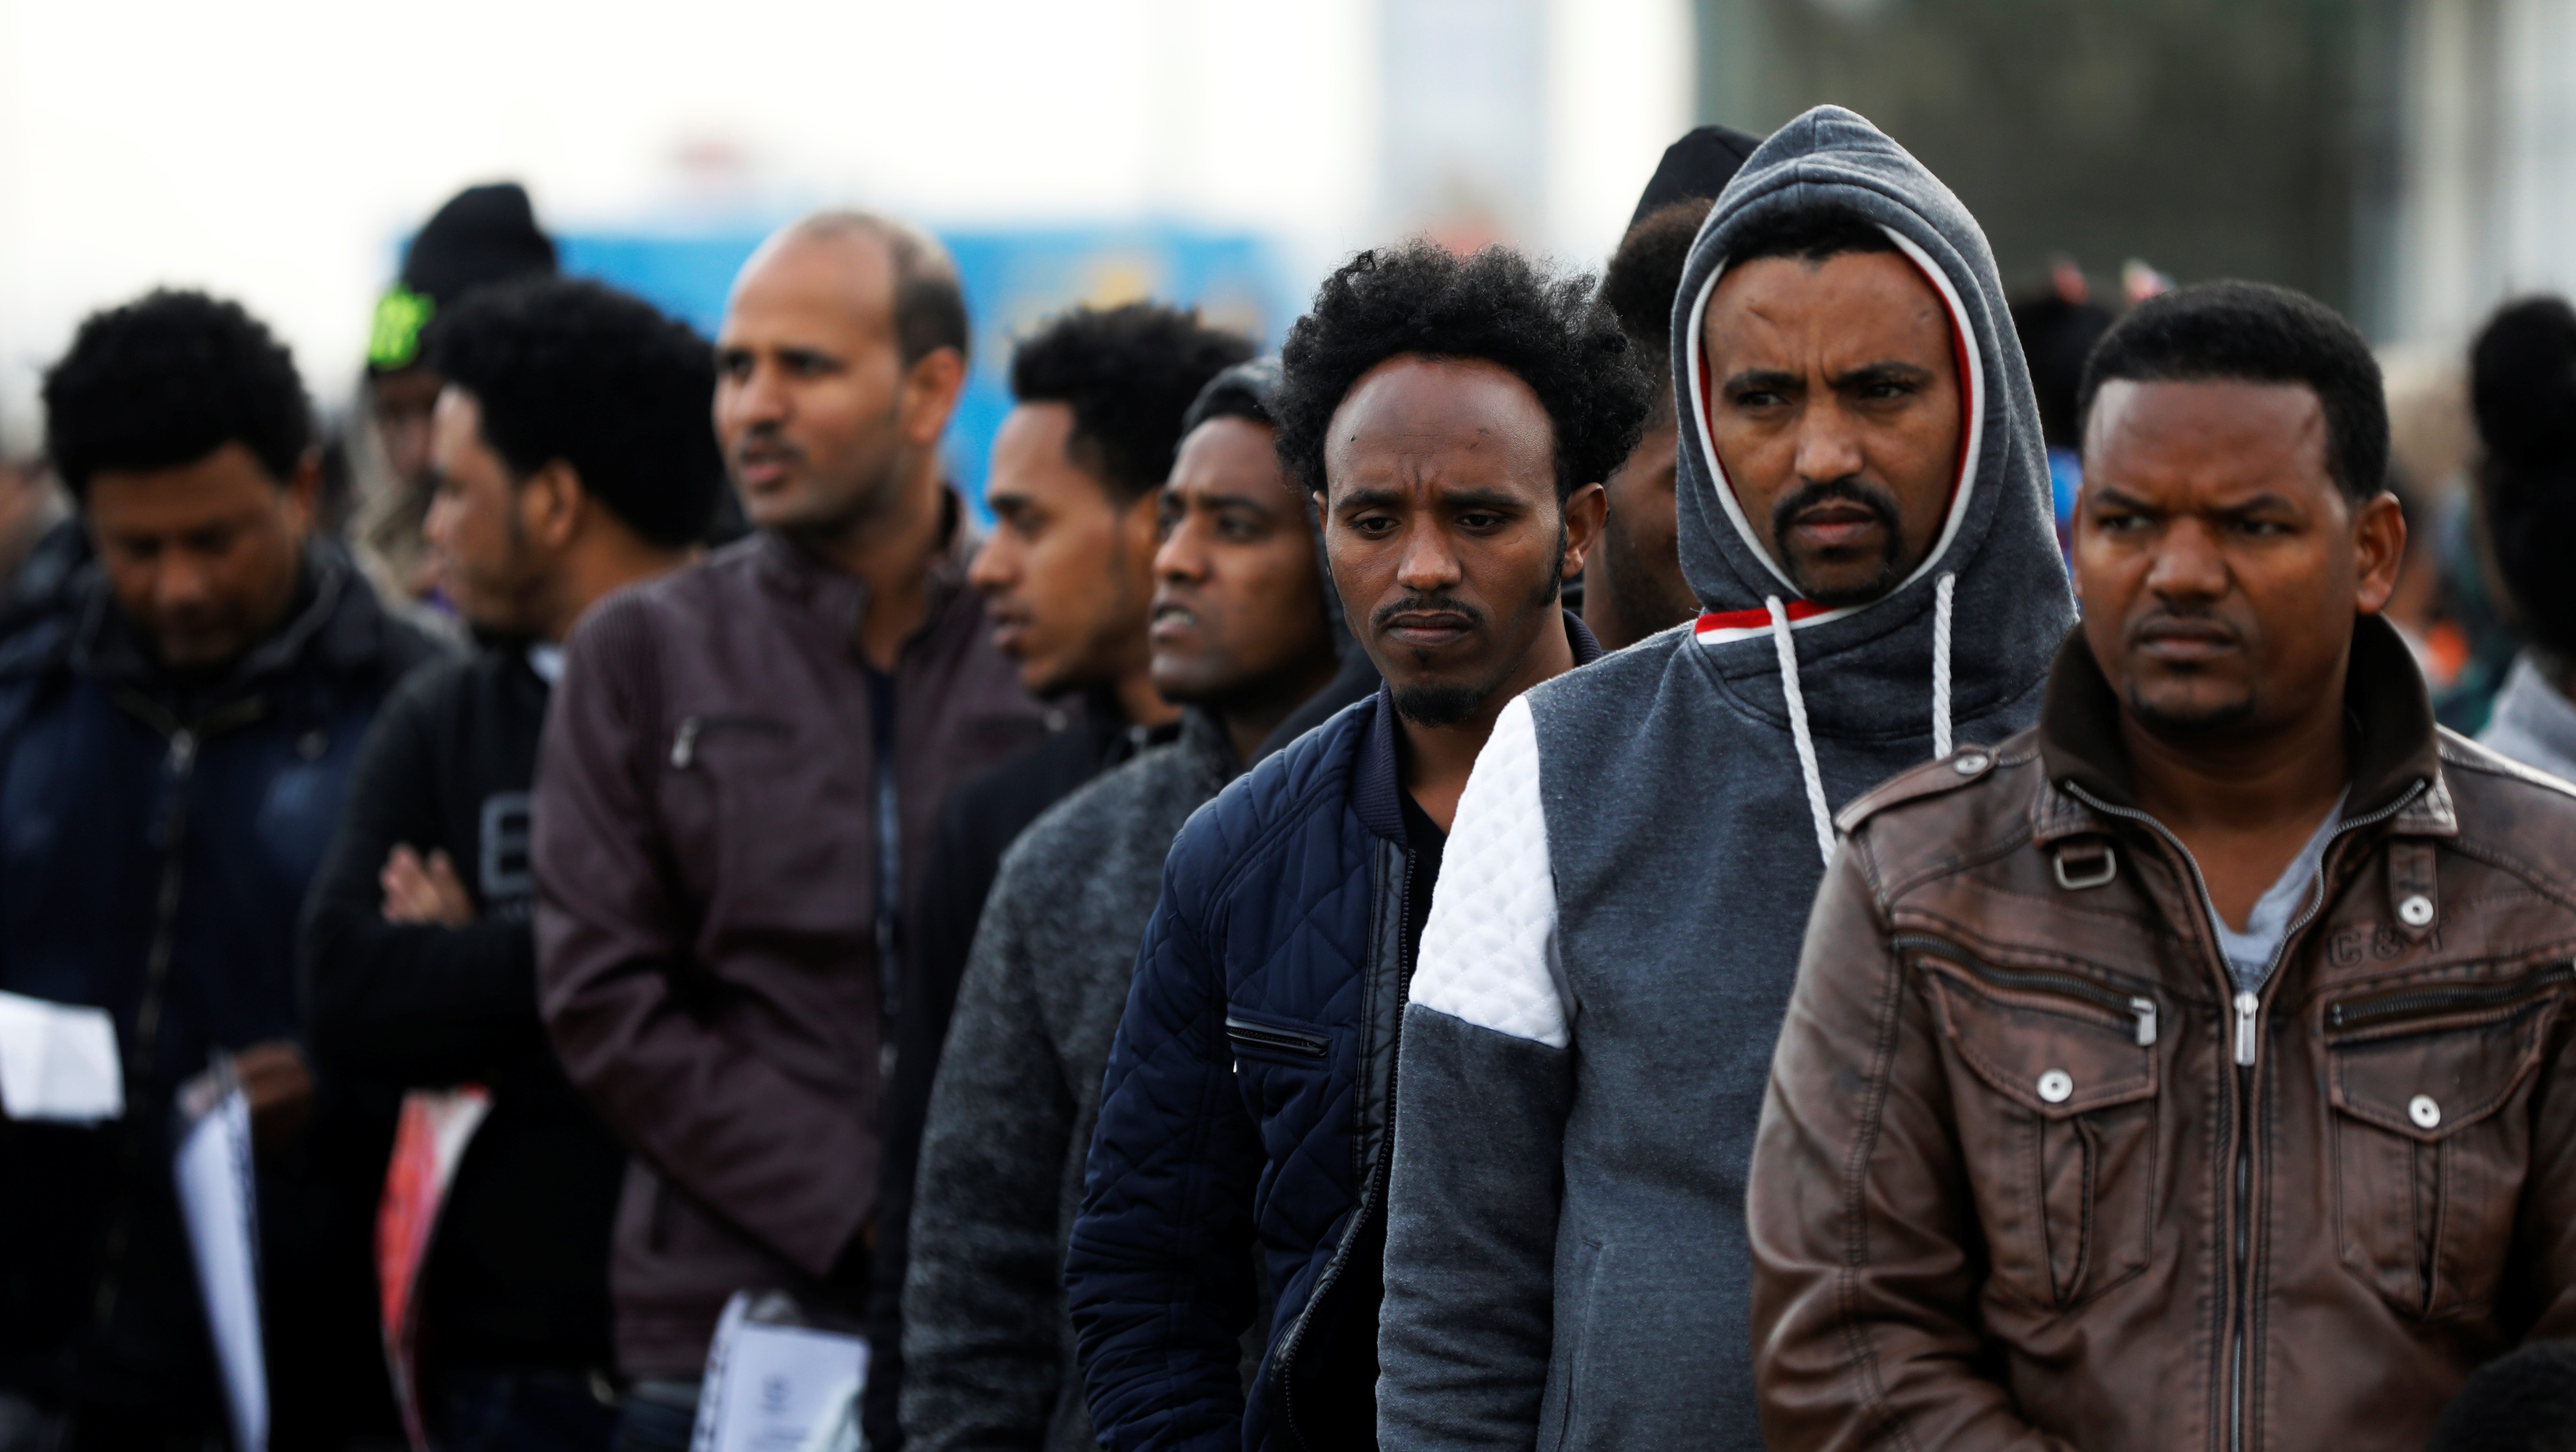 African migrants wait in line for the opening of the Population and Immigration Authority office in Bnei Brak, Israel February 4, 2018. Picture taken February 4, 2018.